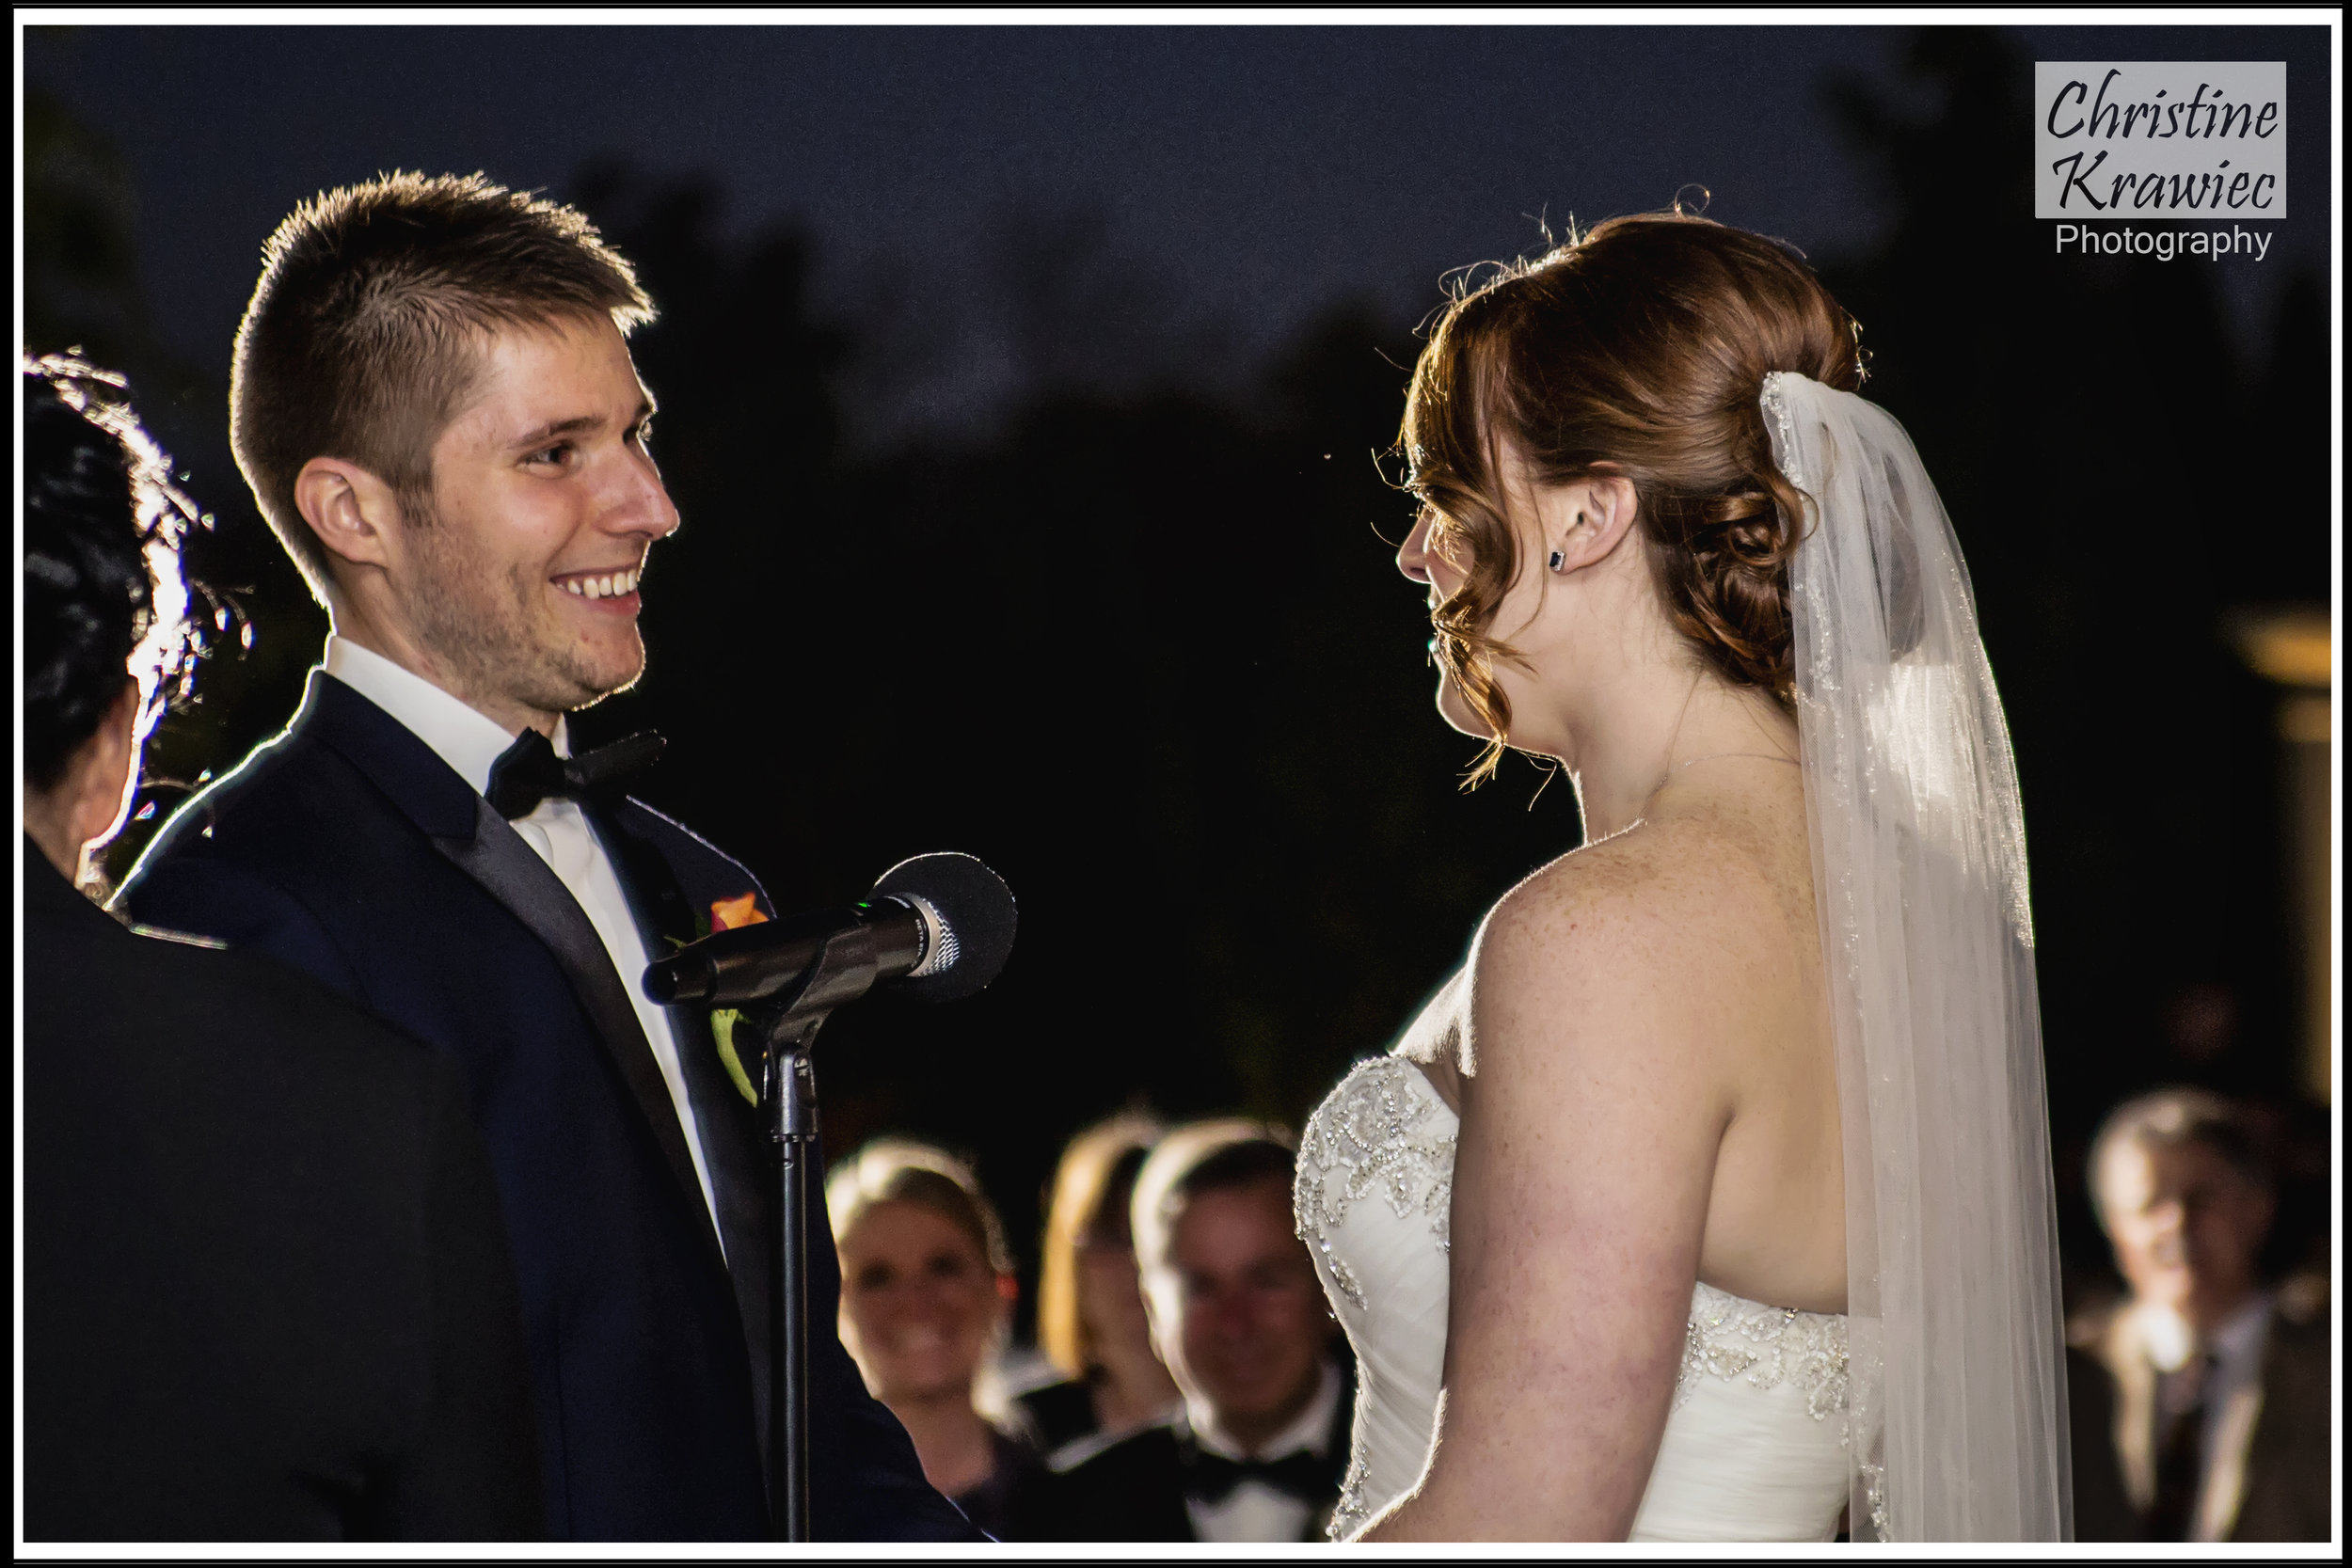 I always love the joy beaming from the couple at the ceremony